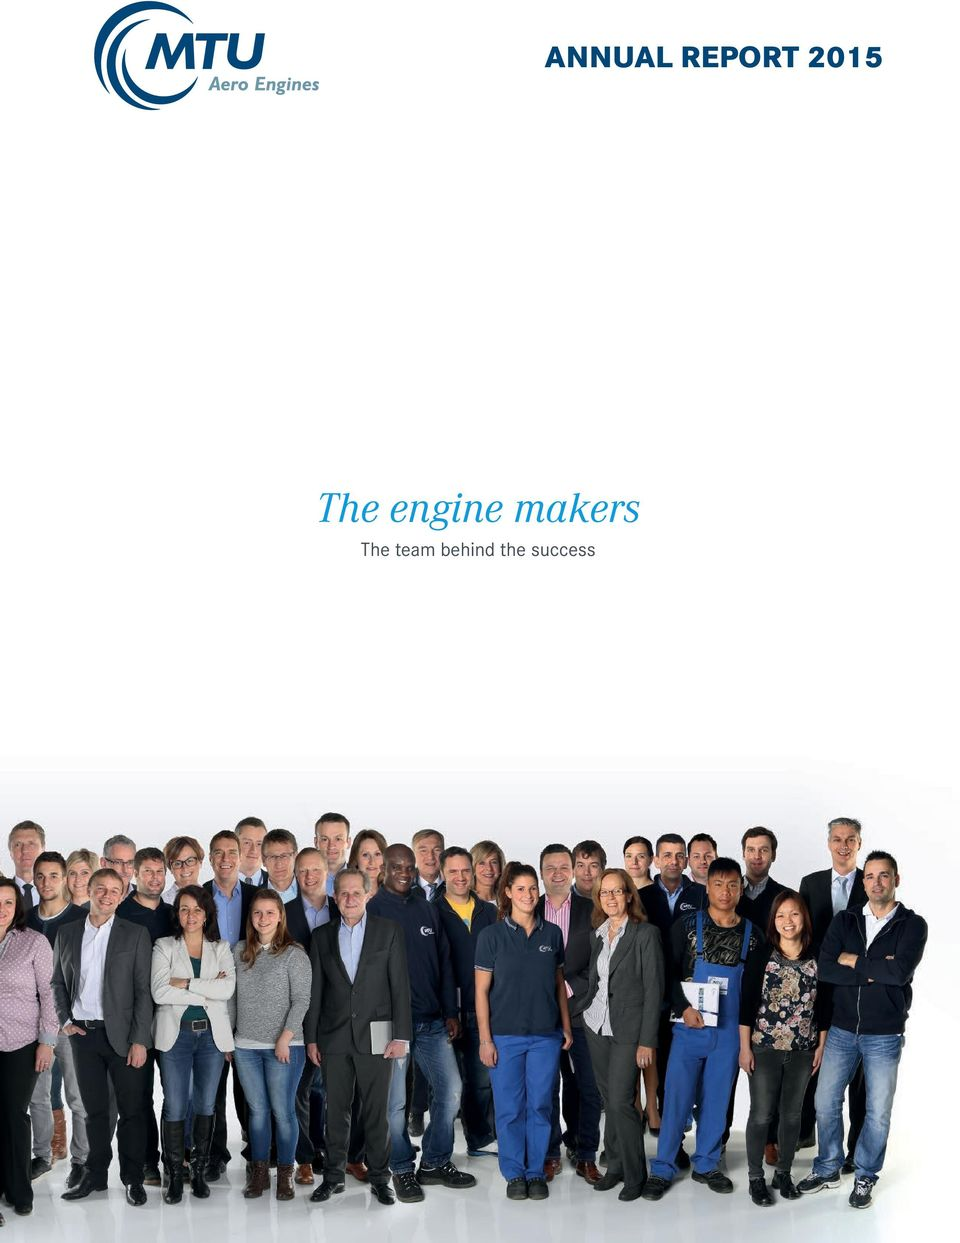 makers The team